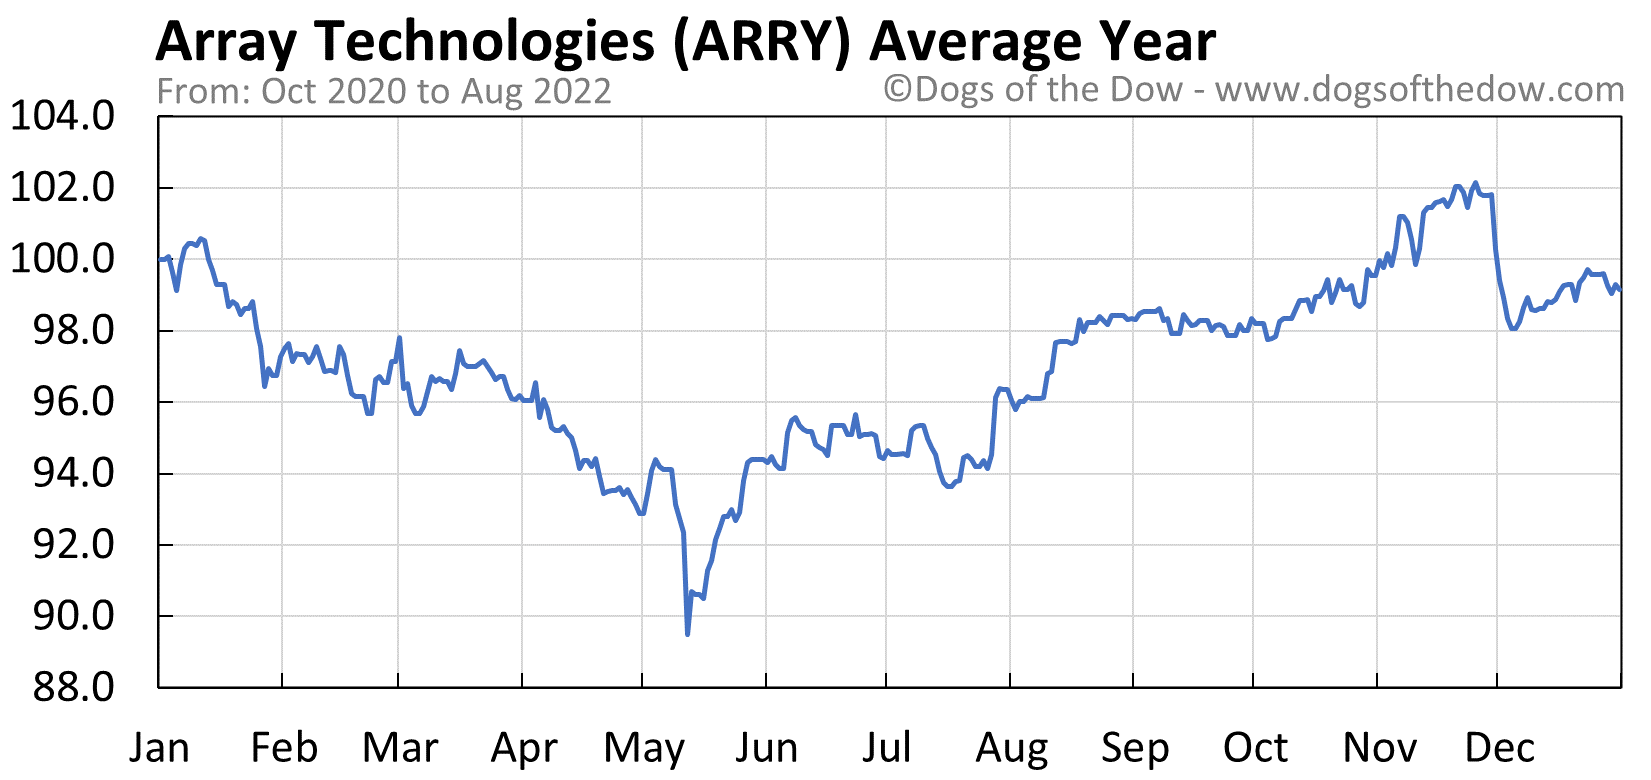 ARRY average year chart